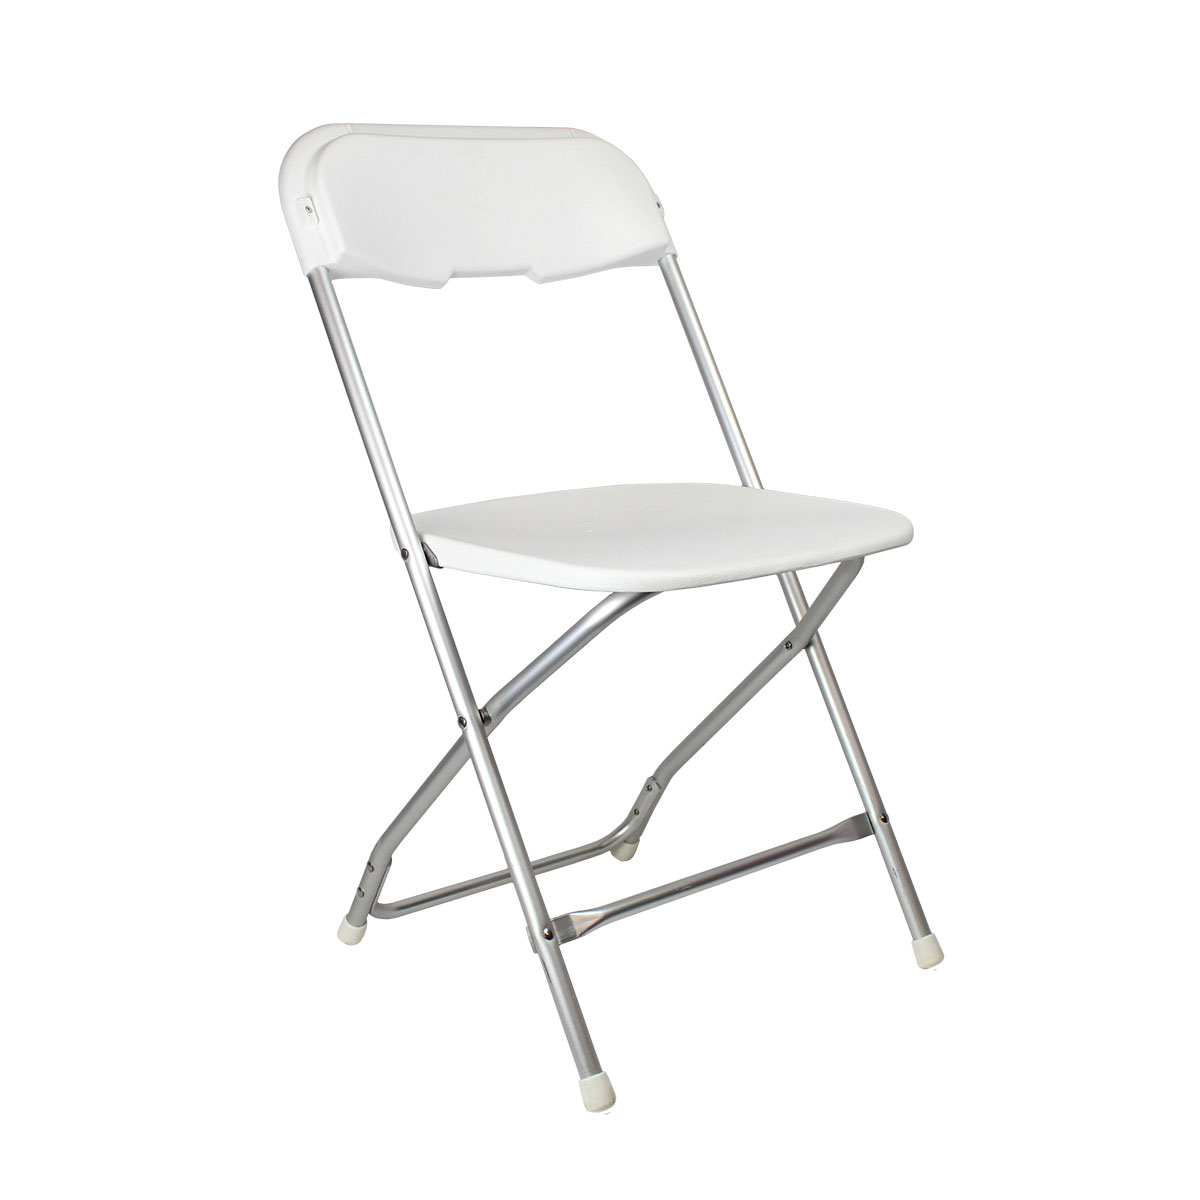 Chair White Plastic Folding